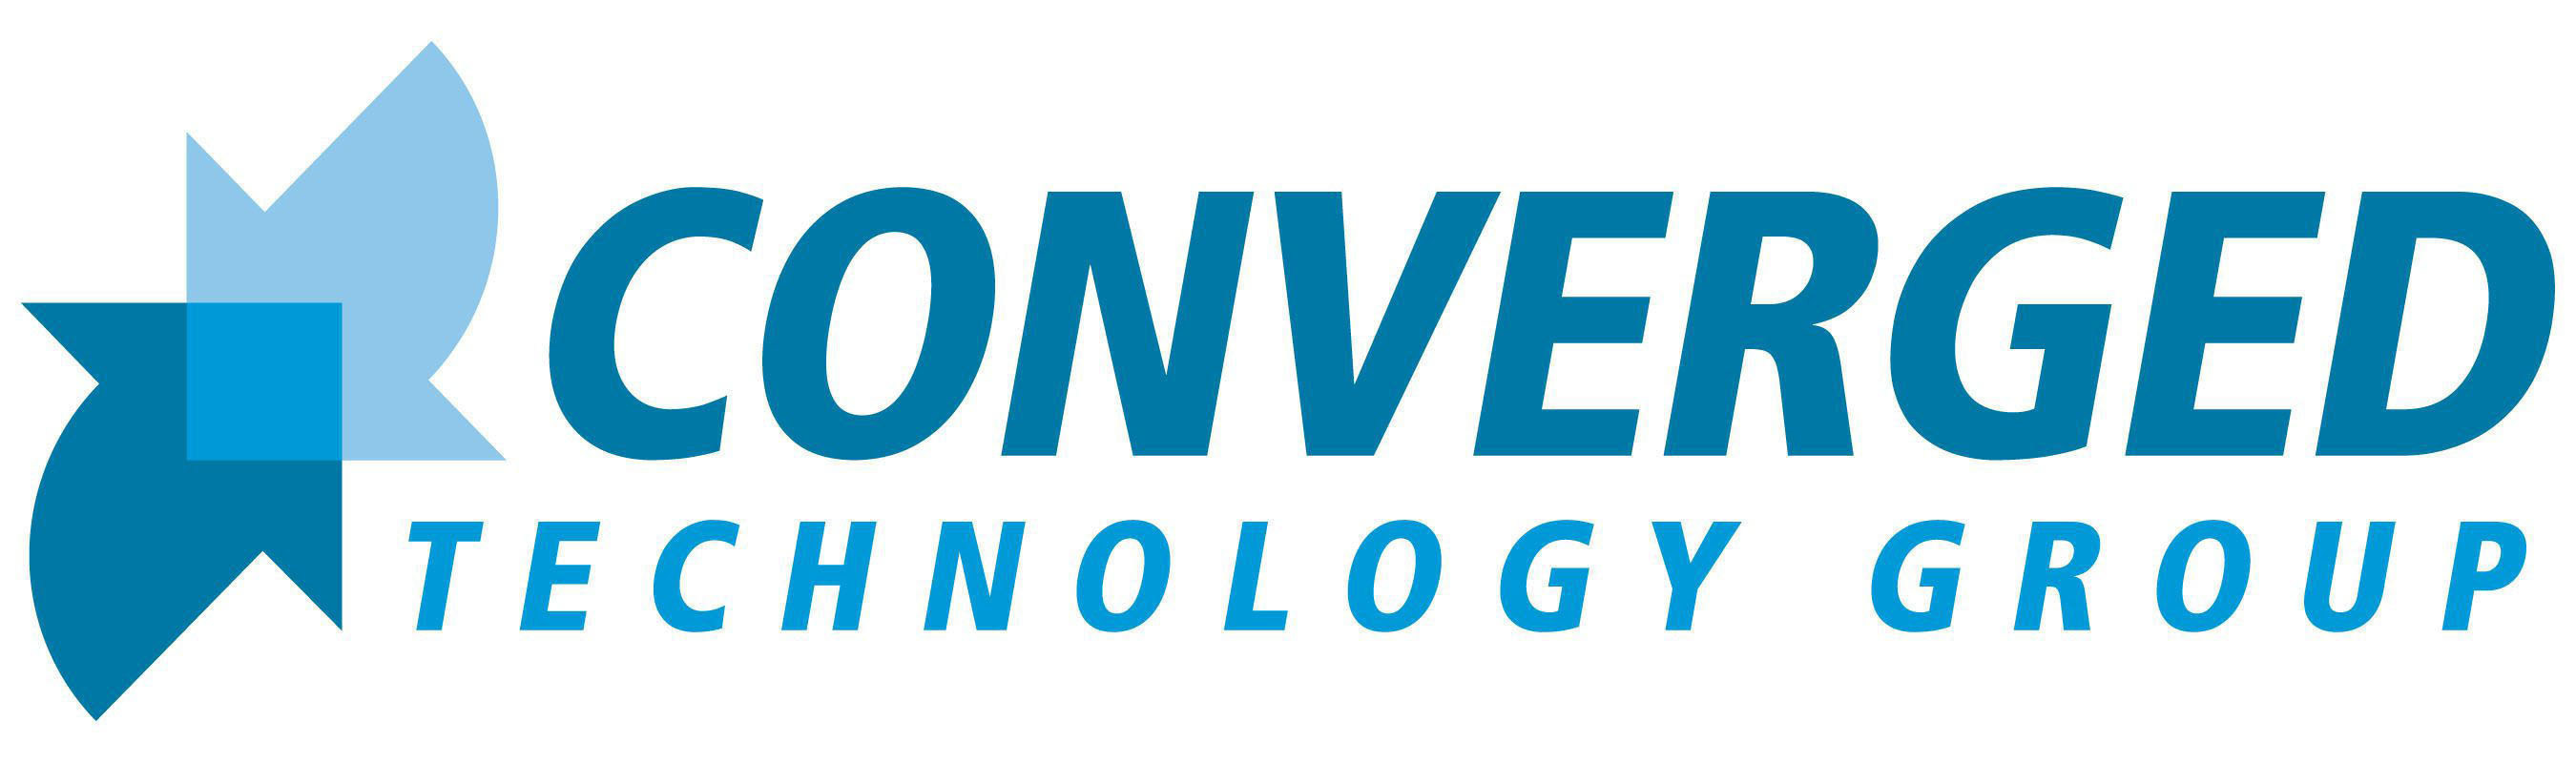 Converged Technology Group Named To Crn Tech Elite 250 For Fifth